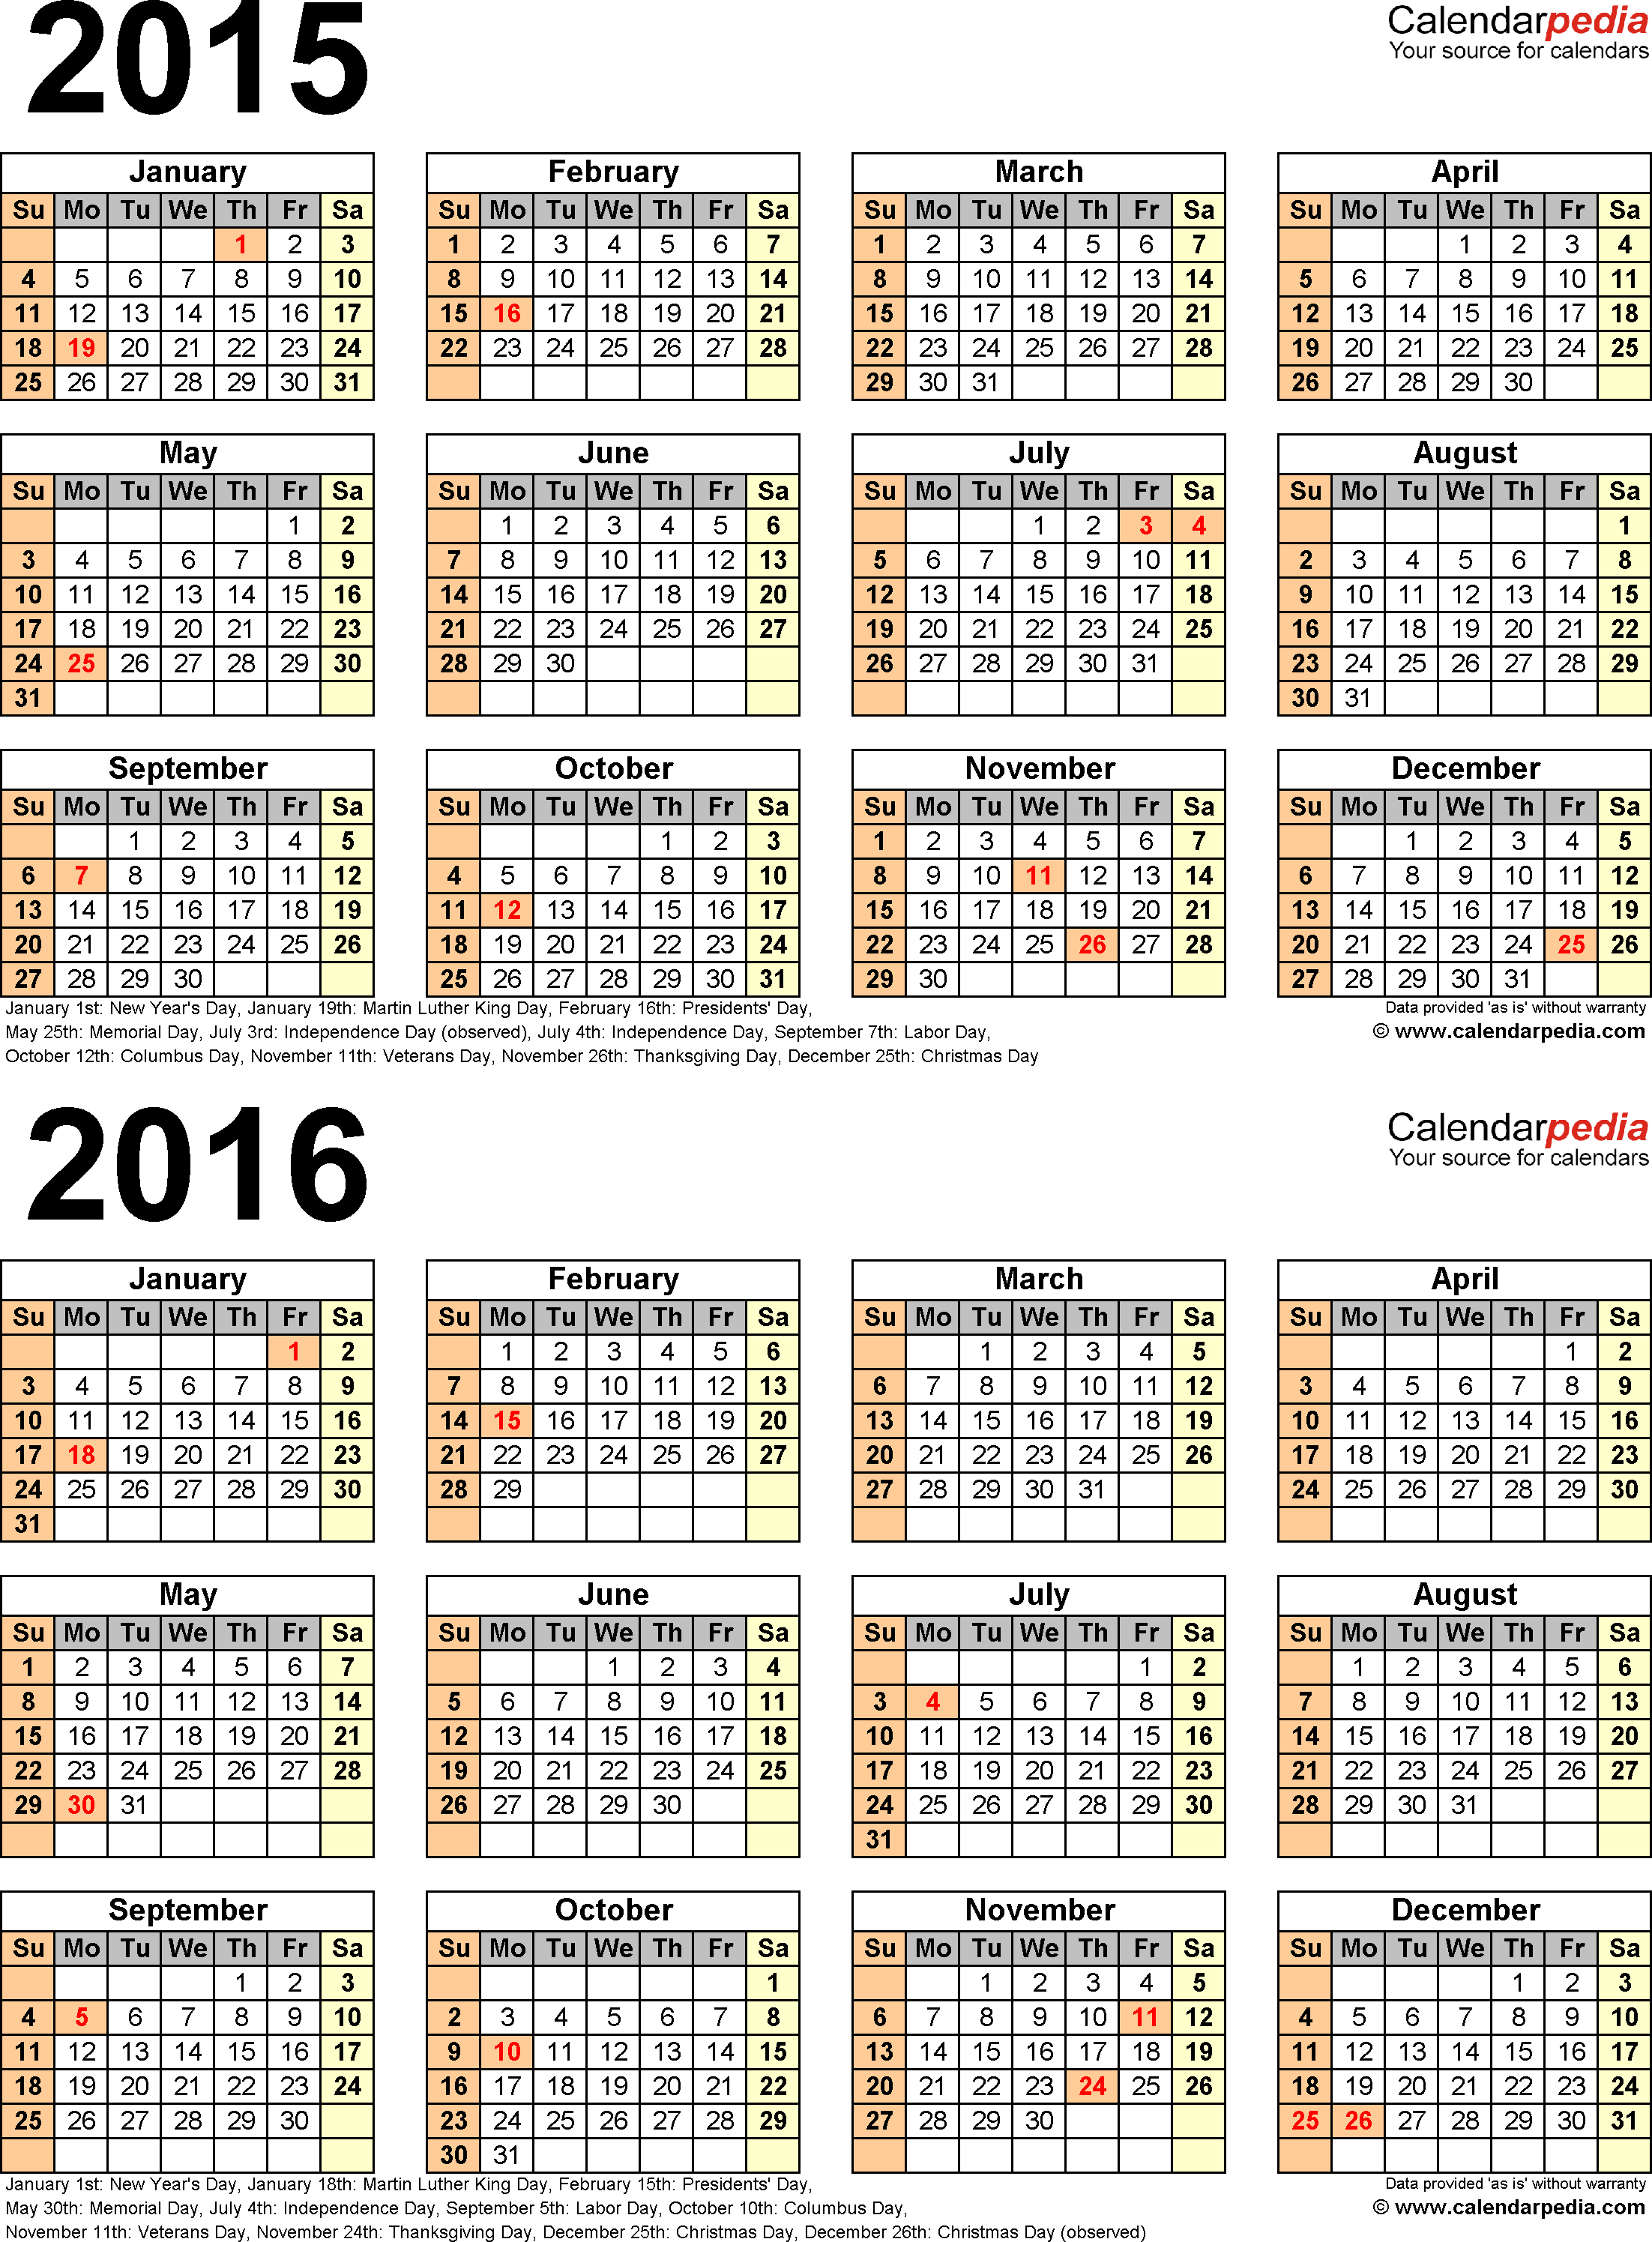 2015-2016 Calendar - free printable two-year PDF calendars